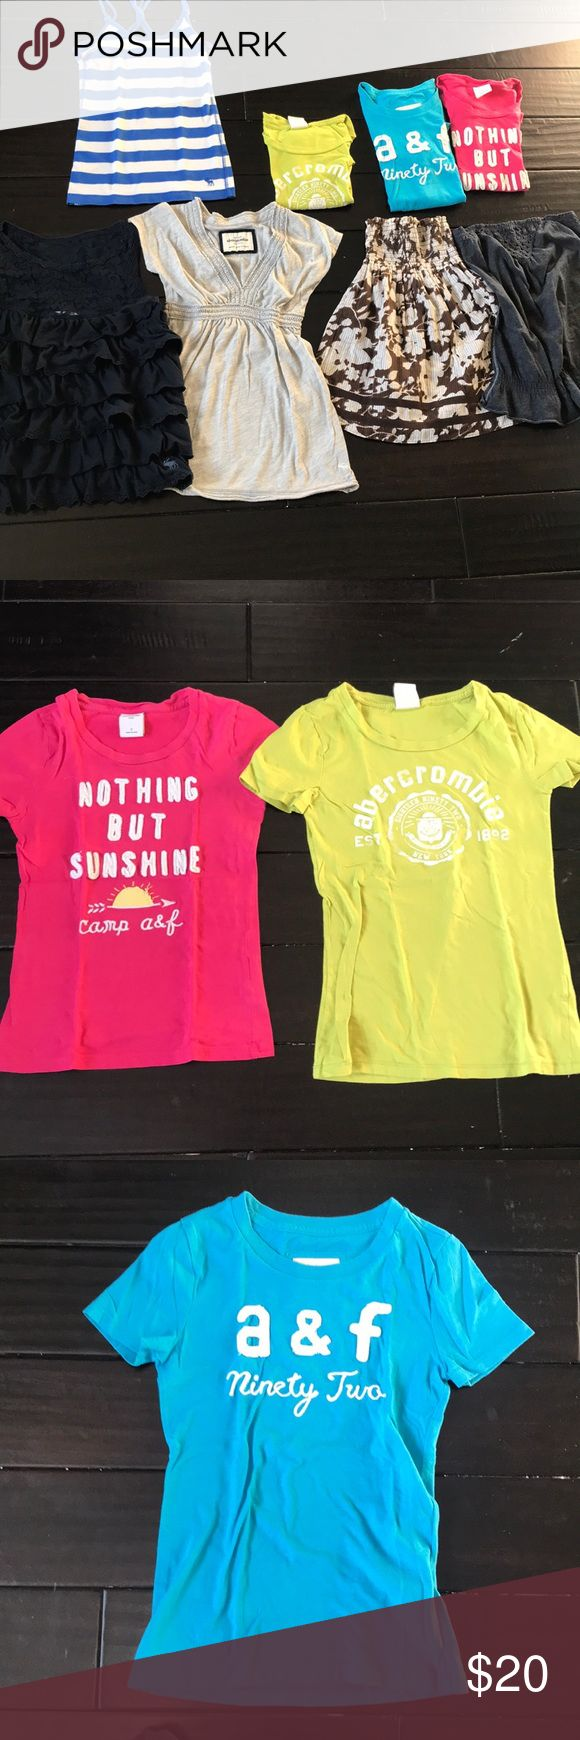 Abercrombie girls top lot of 8 Abercrombie girls top lot of 8 Sizes small and Medium  3 T- shirts 👚  2 tank tops One shirt  2 strapless tops Normal wash wear Abercombie Kids Shirts & Tops Tees - Short Sleeve